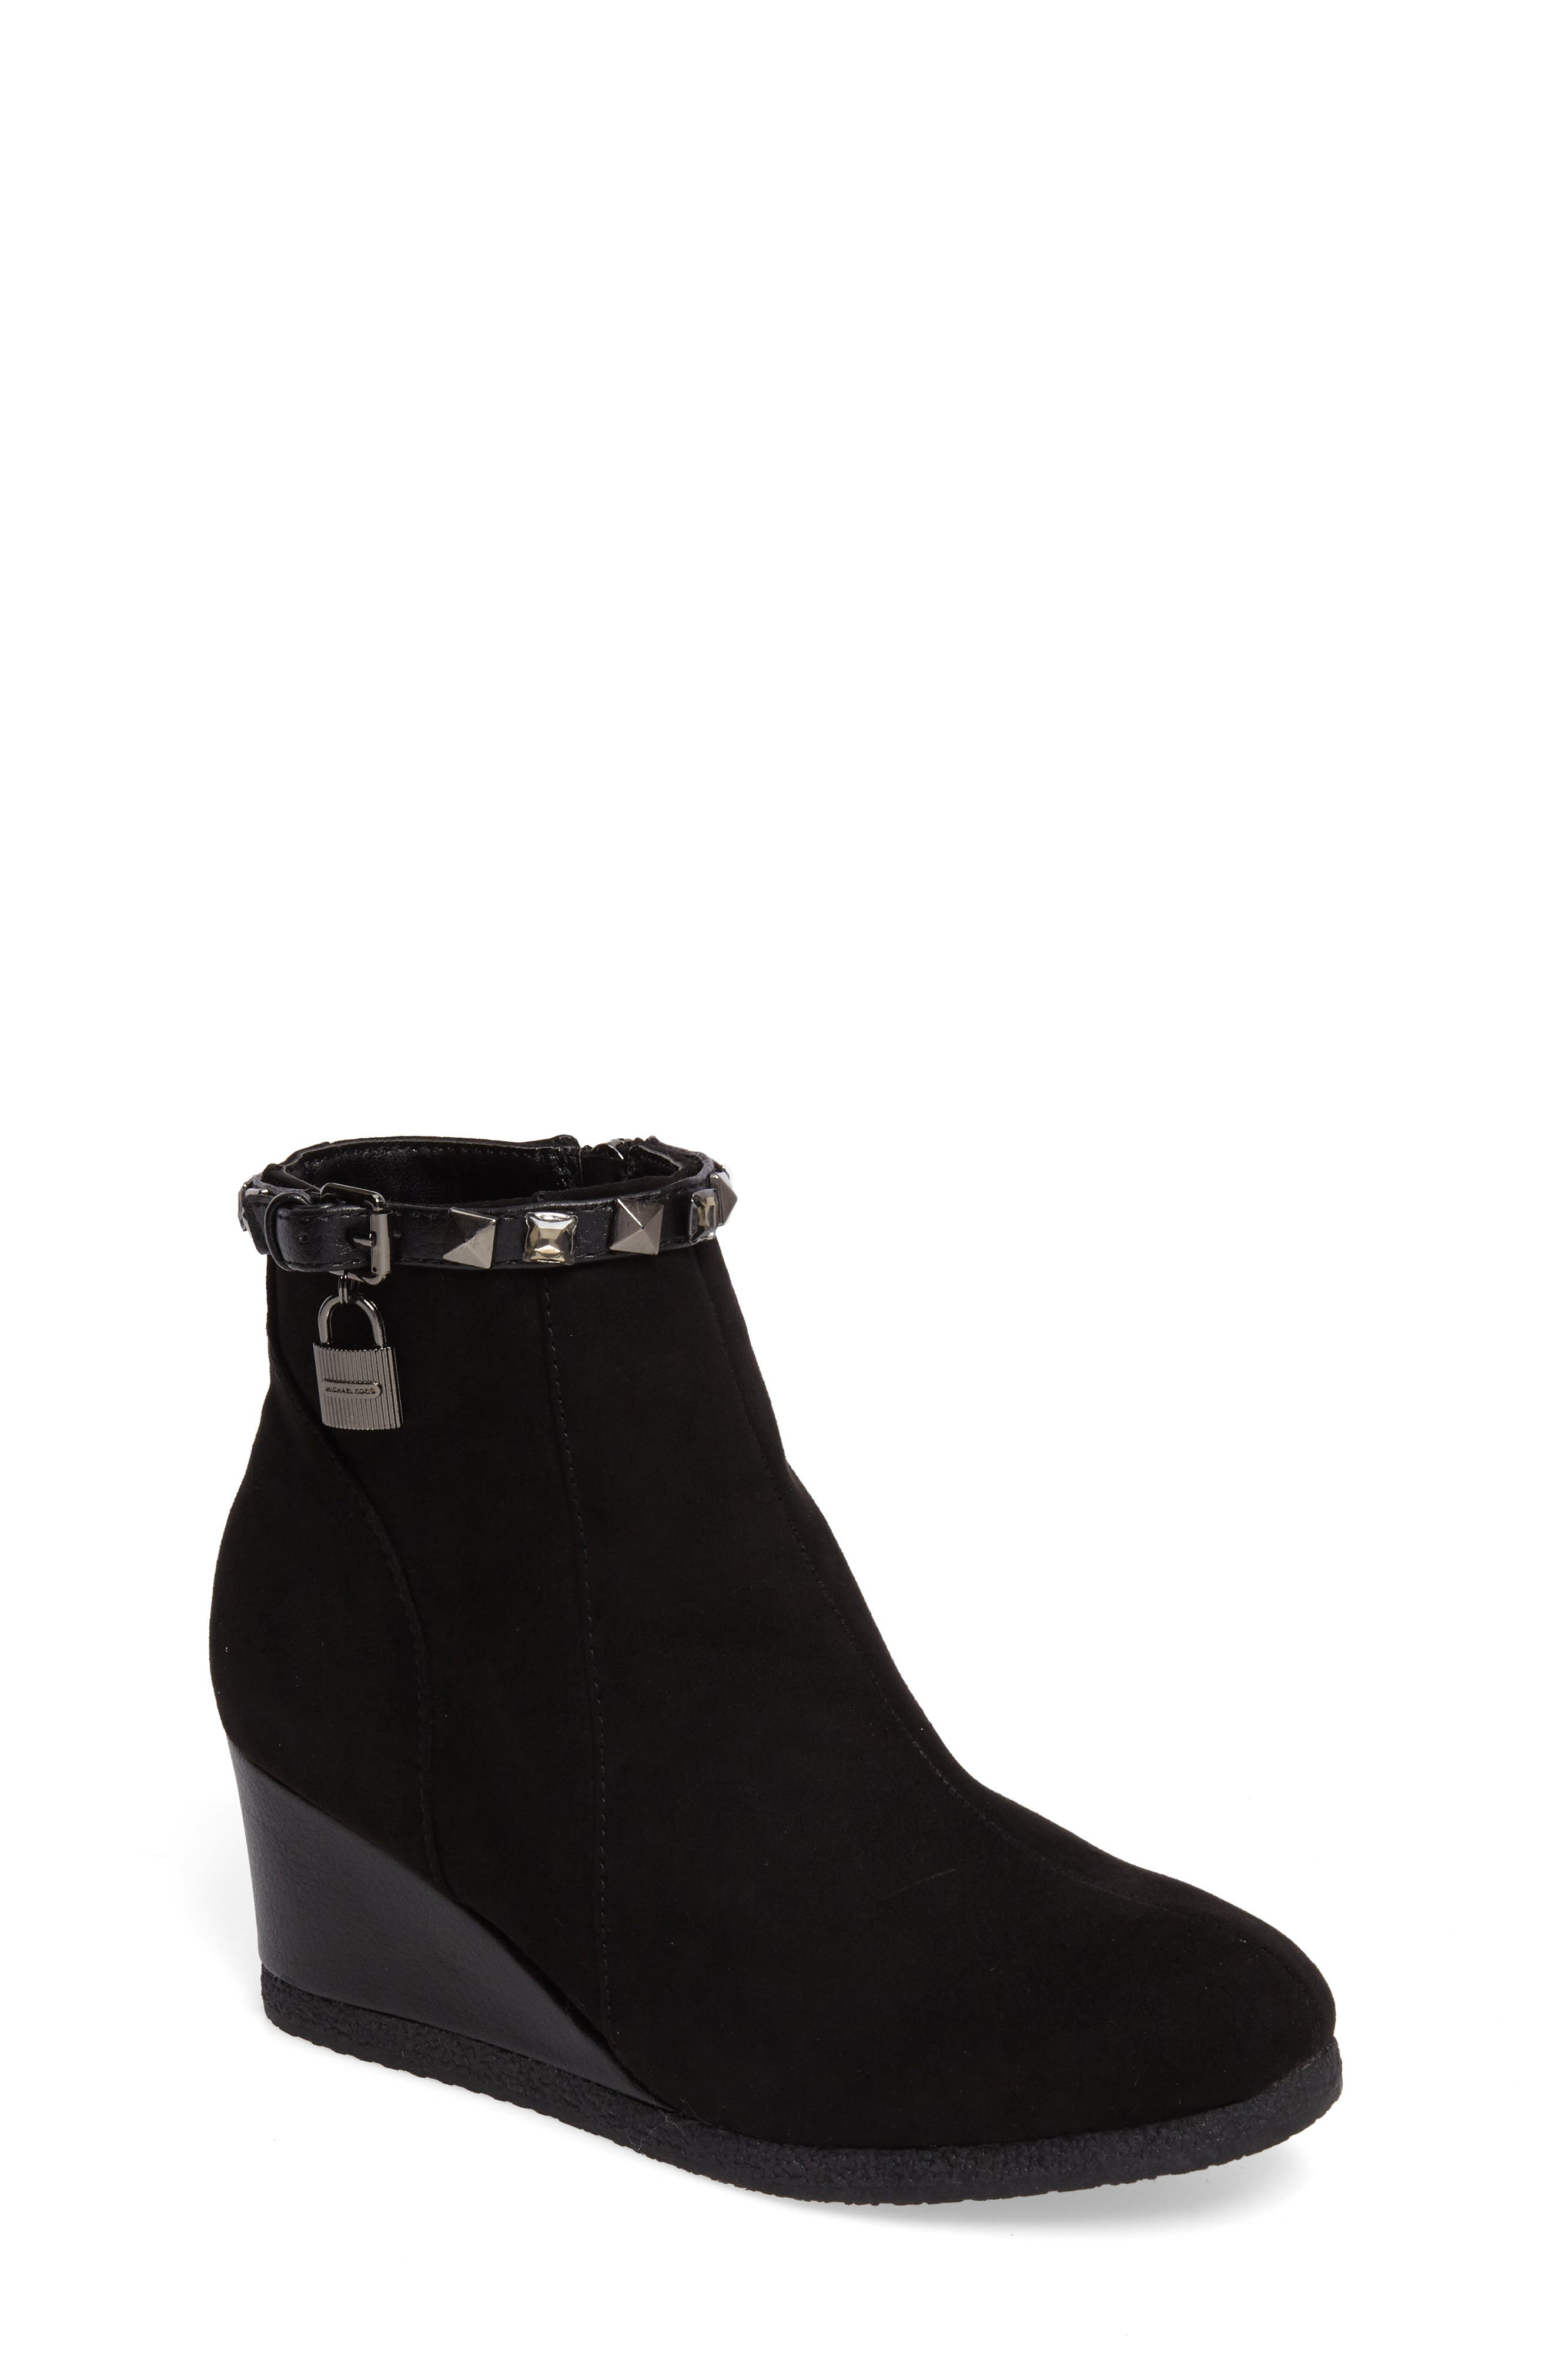 Cara Key Studded Wedge Bootie,                         Main,                         color, Black